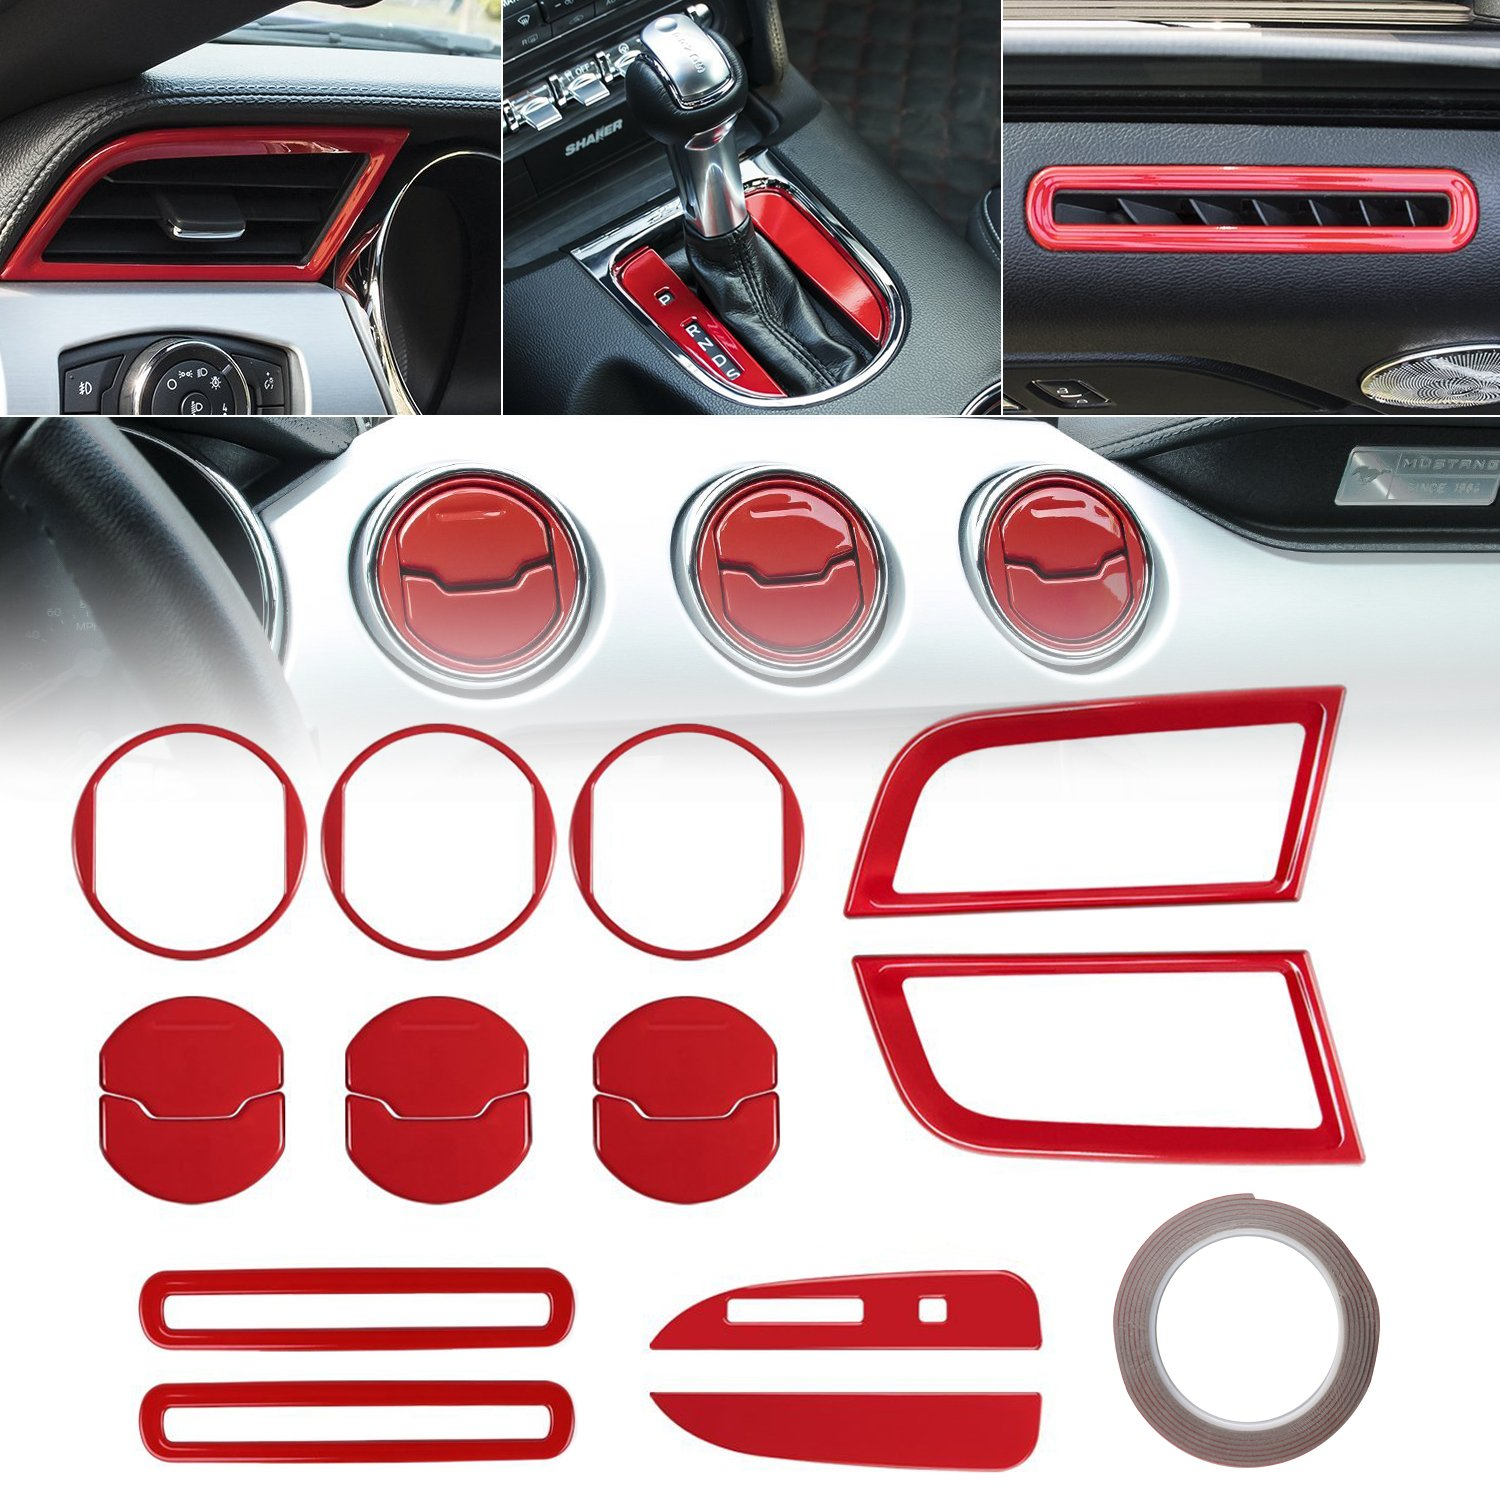 URBEST 2015 2016 2017 2018 for Ford Mustang Interior 15 PCS Accessories Decoration Set Console Central Dash Board Side Air Conditioner Outlet Vent Shift Gear Box Switch Button Cover Trim Red Door